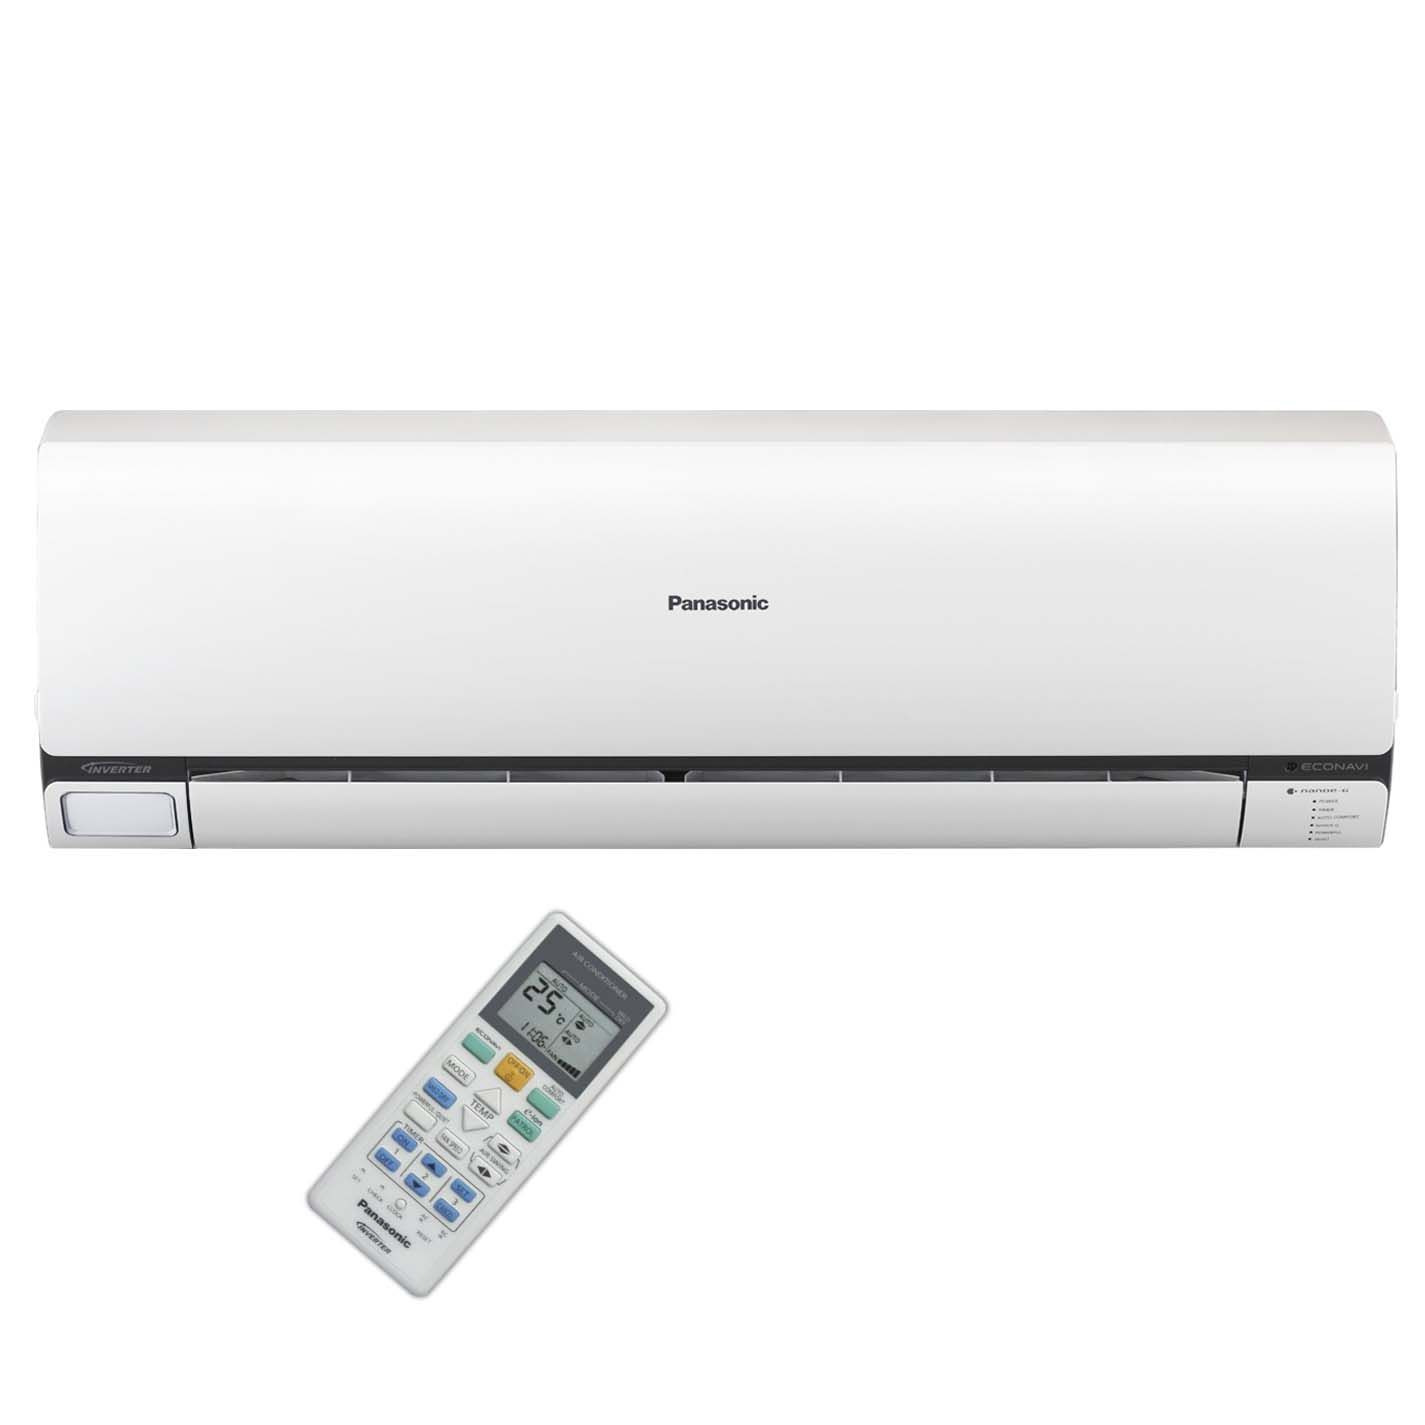 Panasonic Cs S24pkh 2 0 Ton Inverter Ac Price In Bangladesh Ac Mart Bd Inverter Ac Ac Price Save Energy